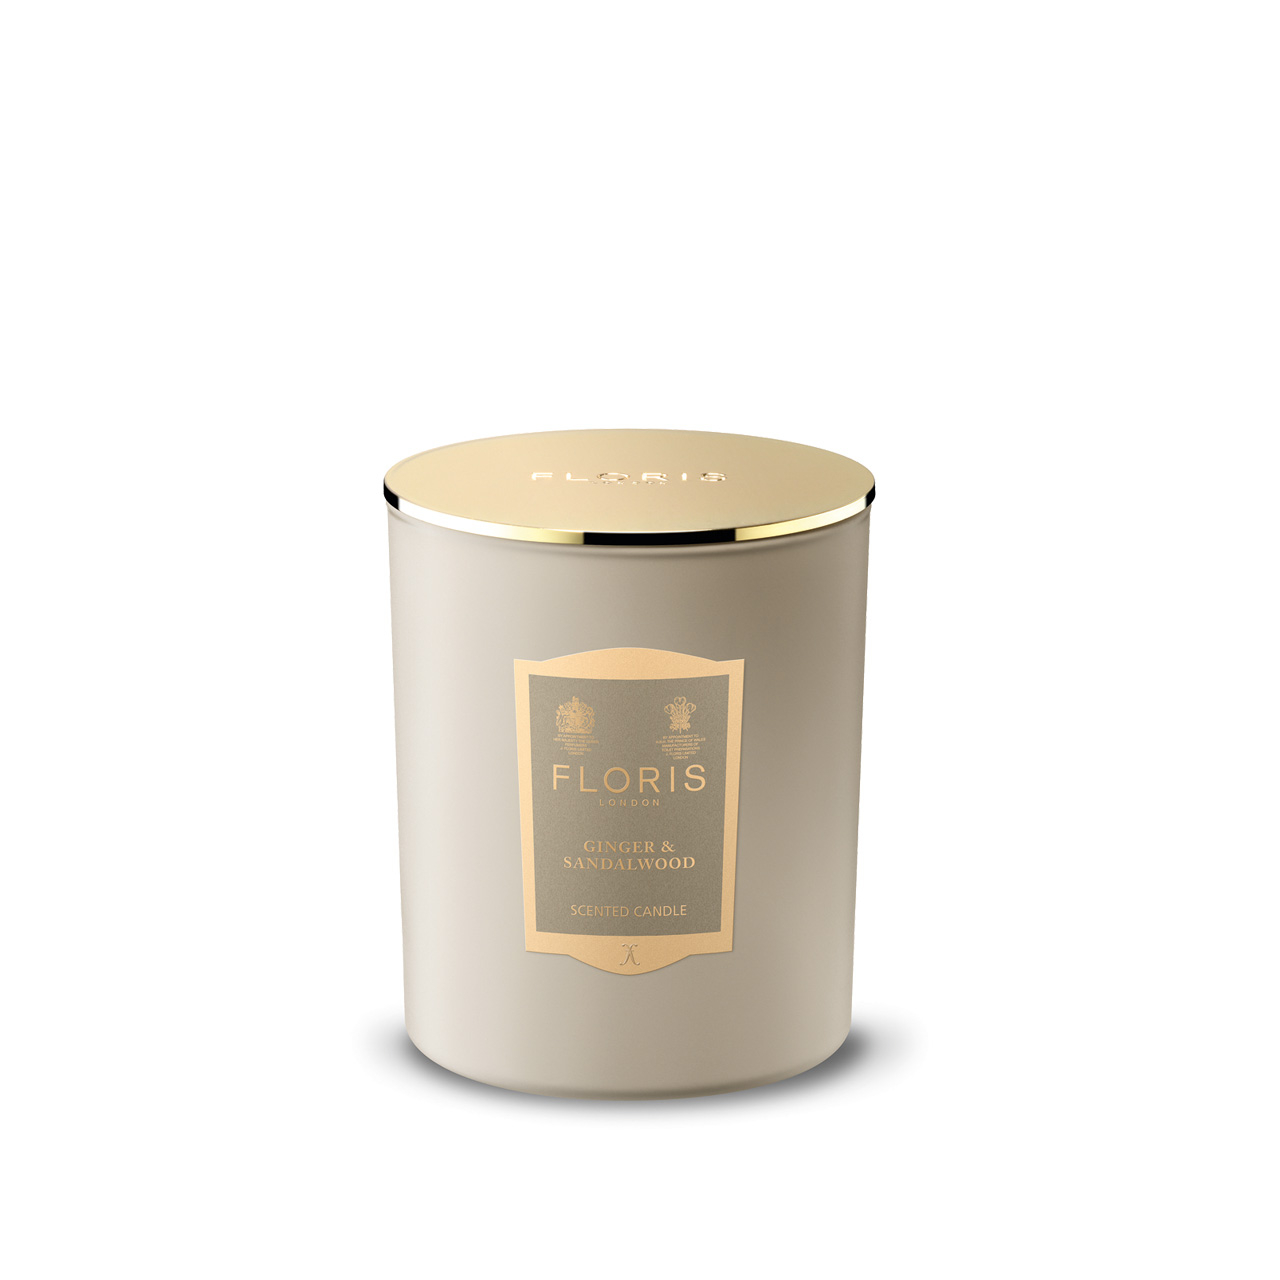 Ginger & Sandalwood - Candle